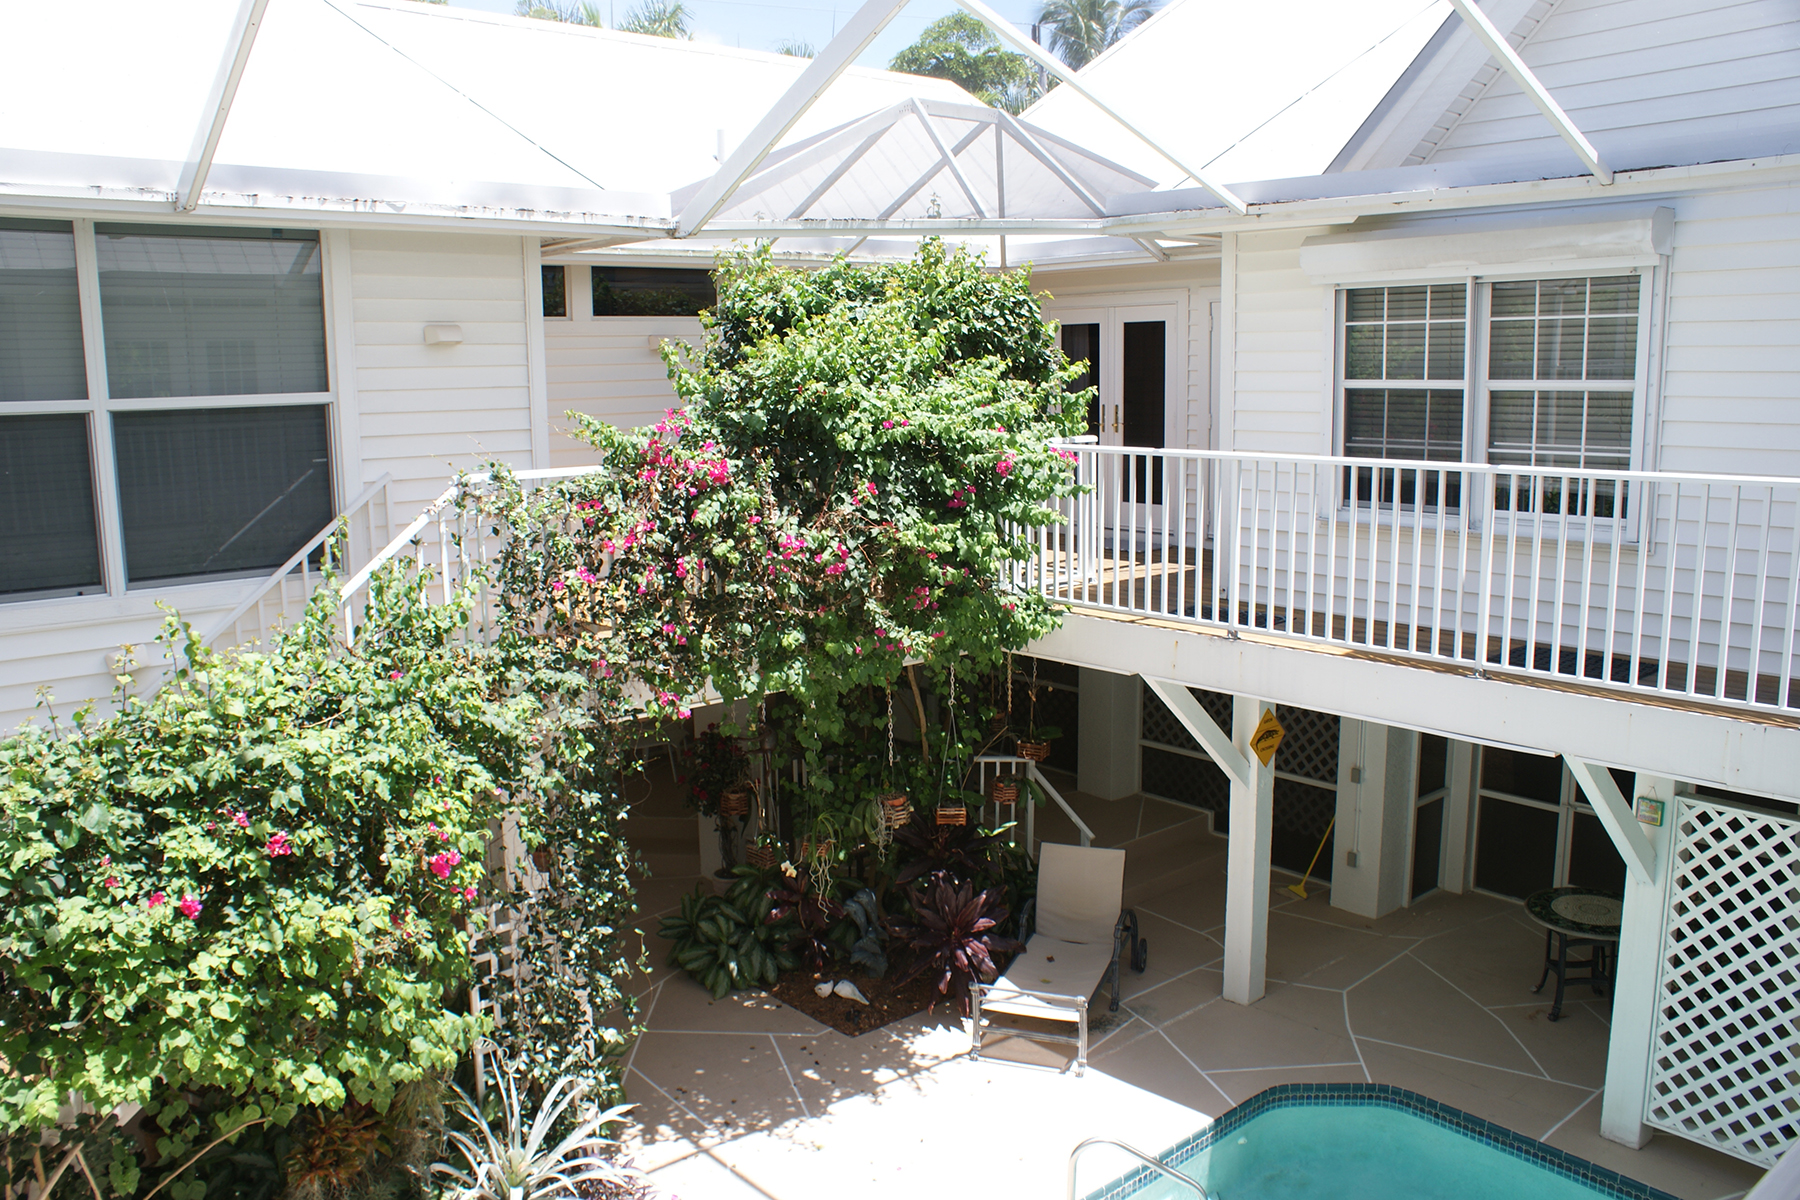 Single Family Home for Sale at CAPTIVA 11514 Wightman Ln Captiva, Florida 33924 United States